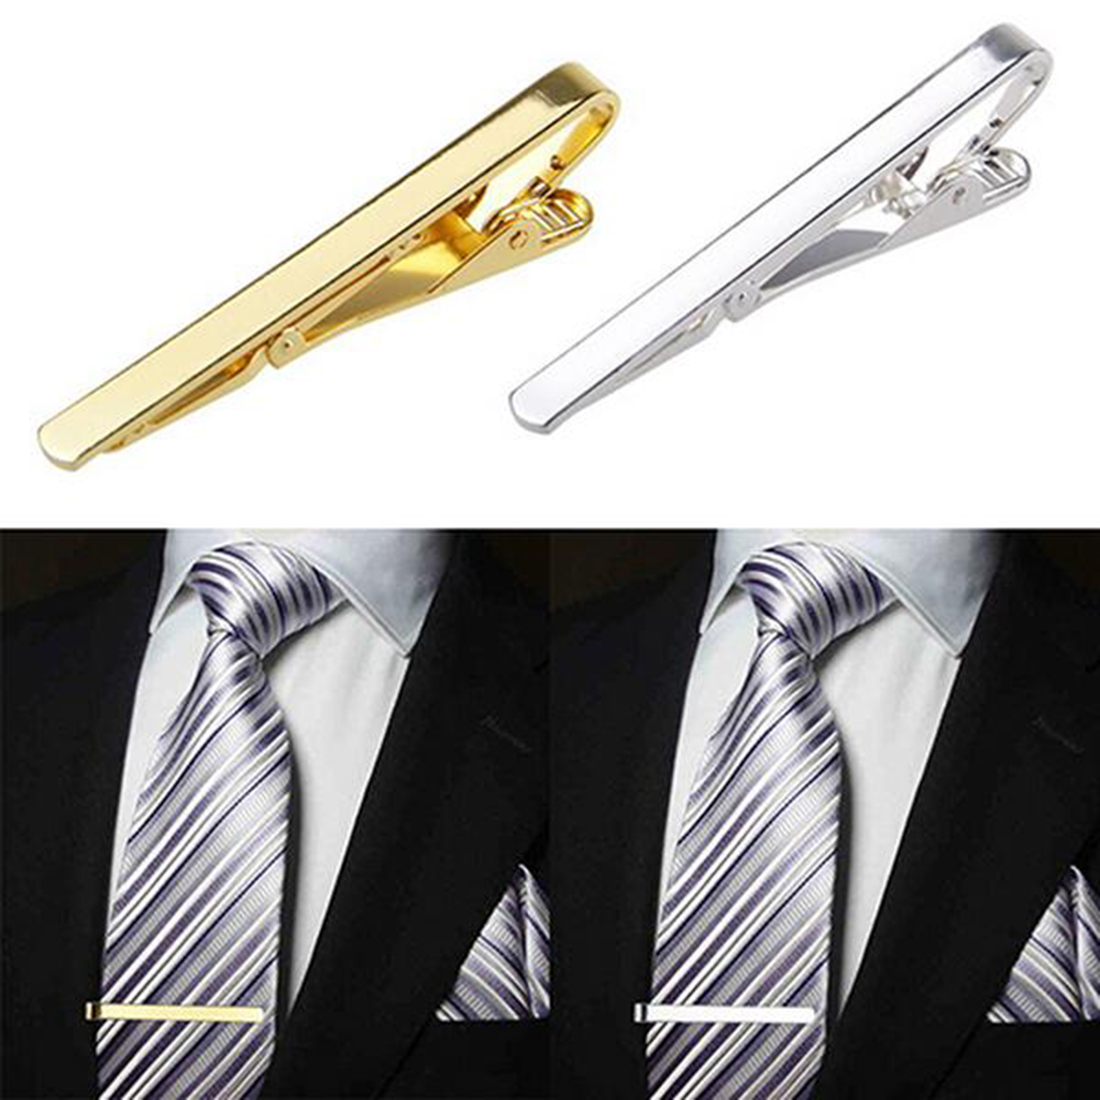 Men Tie Clips Fashion Metal Silver Gold Simple Necktie Tie Bar Clasp Clips Clamp Pins For Men Gift New Design